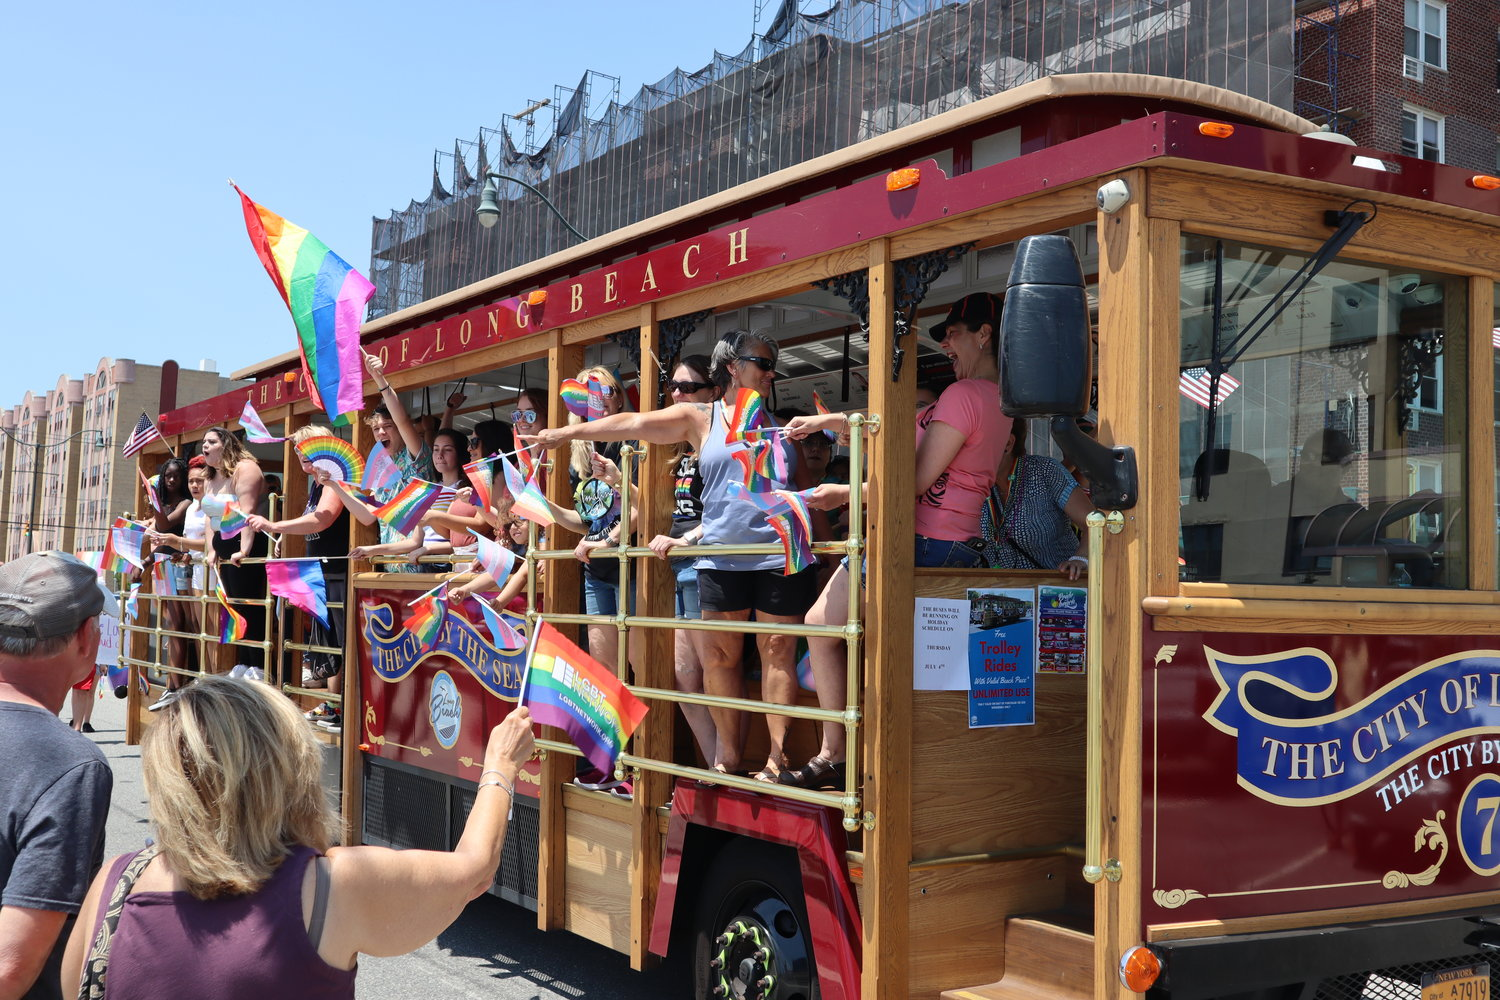 LGBT supporter waved rainbow flags outside a City of Long Beach bus during the 29th annual Pride Parade on Long Island.